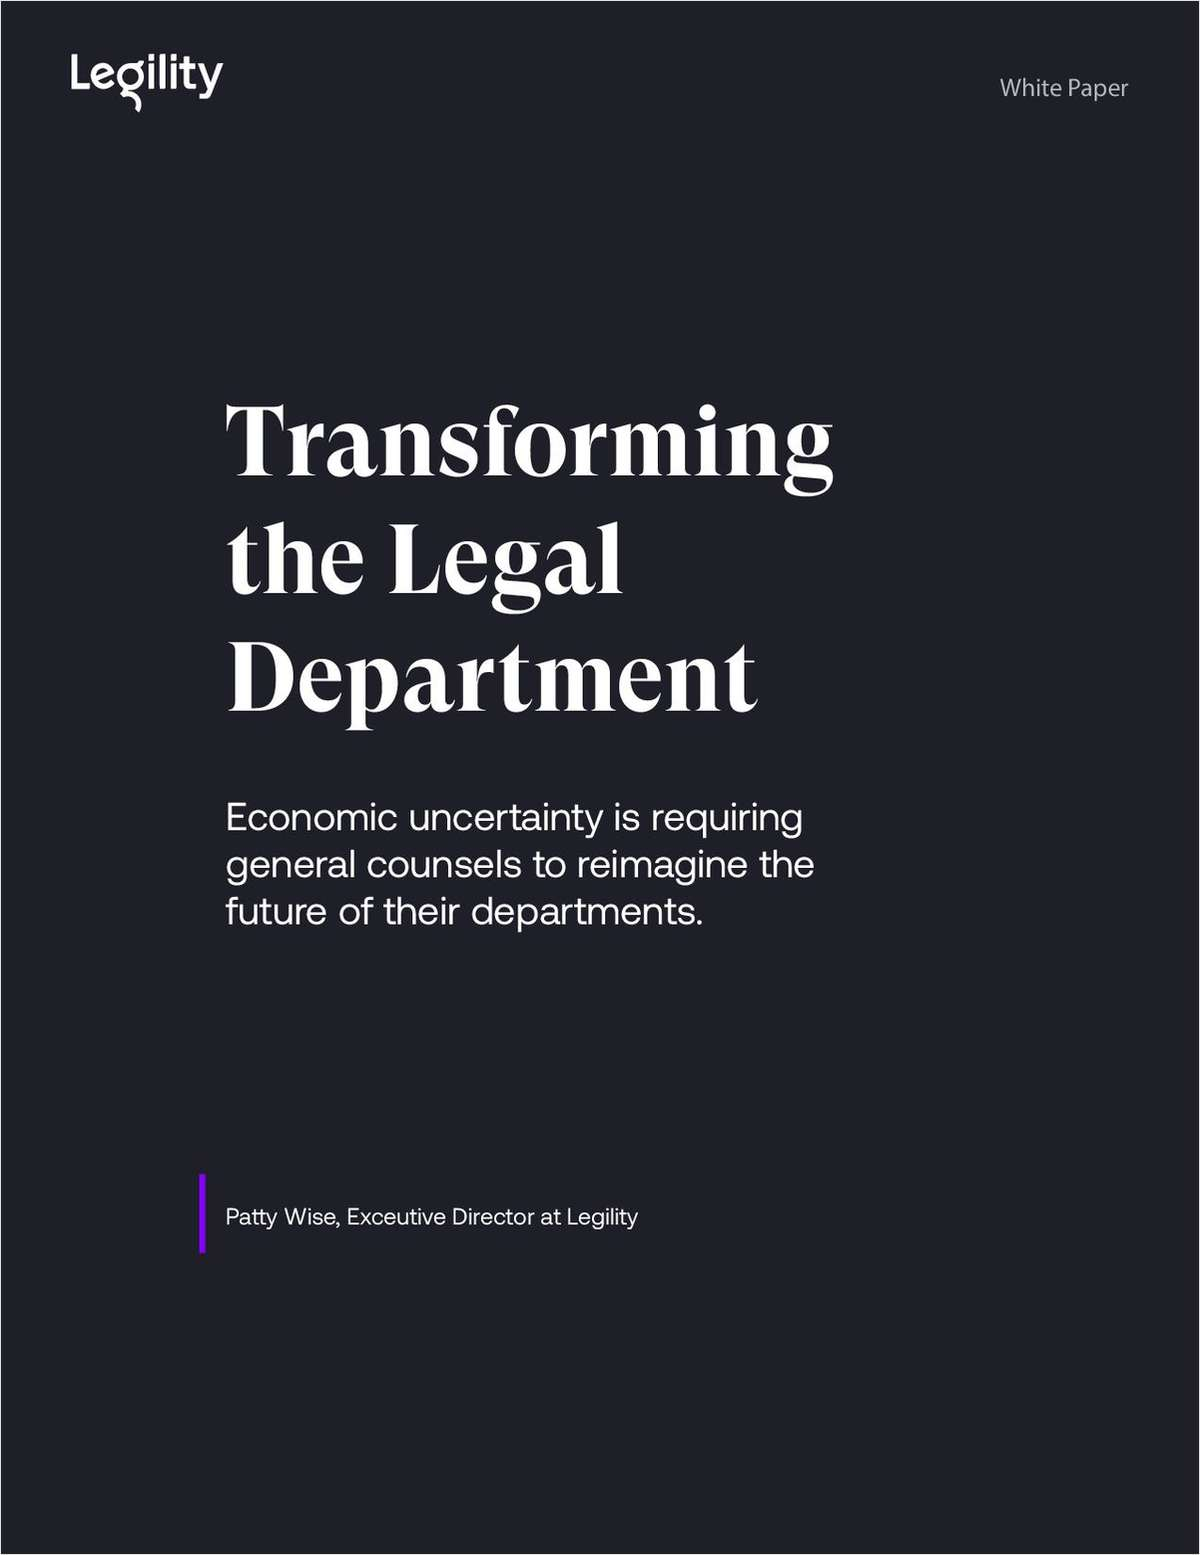 Transforming the Legal Department in Economic Uncertainty